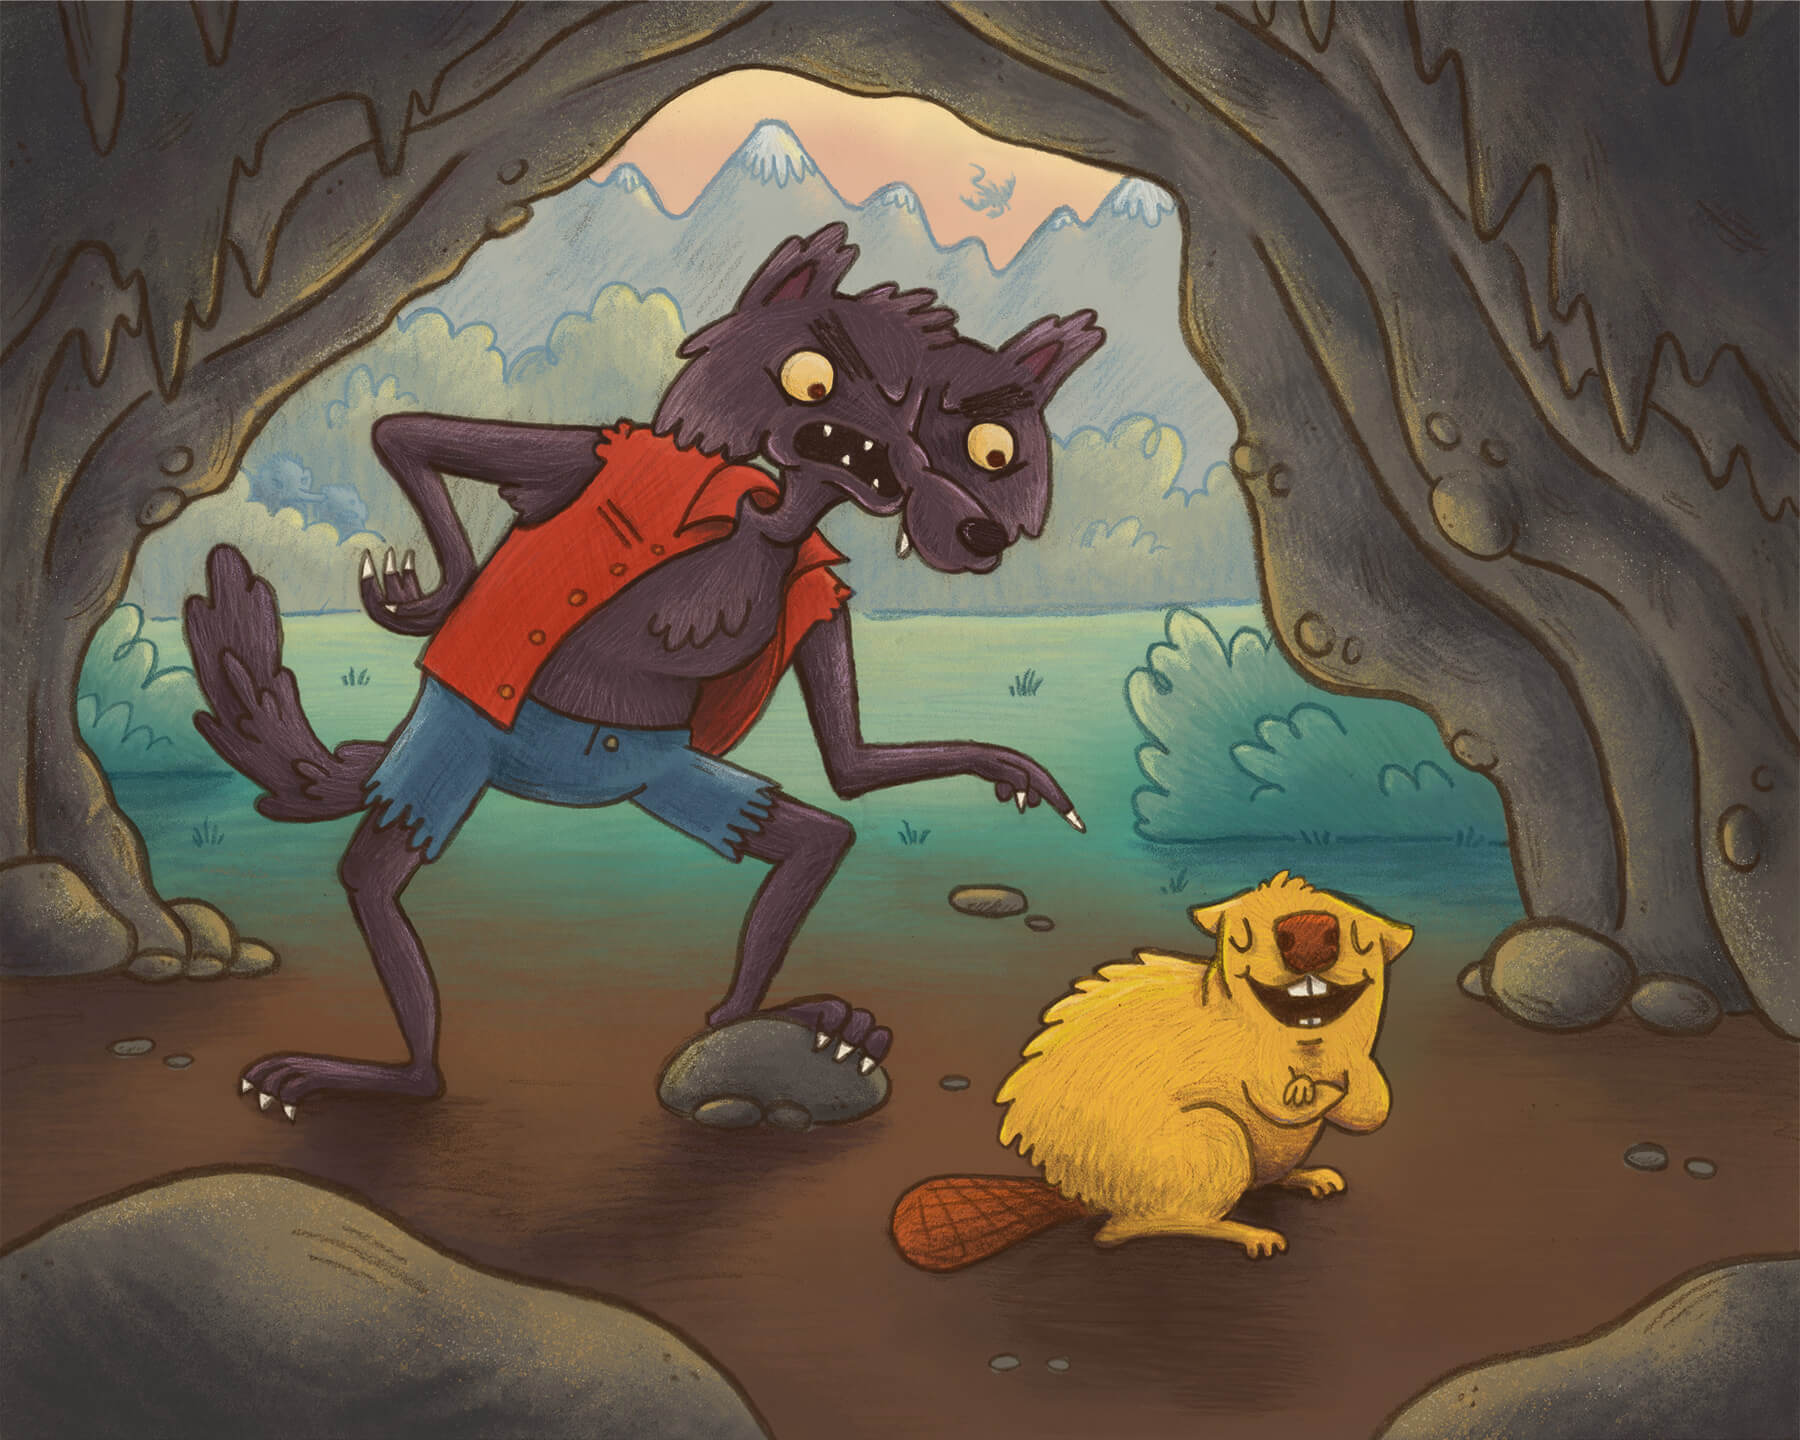 whimsical children's illustration of a brave beaver laughing at a werwolf